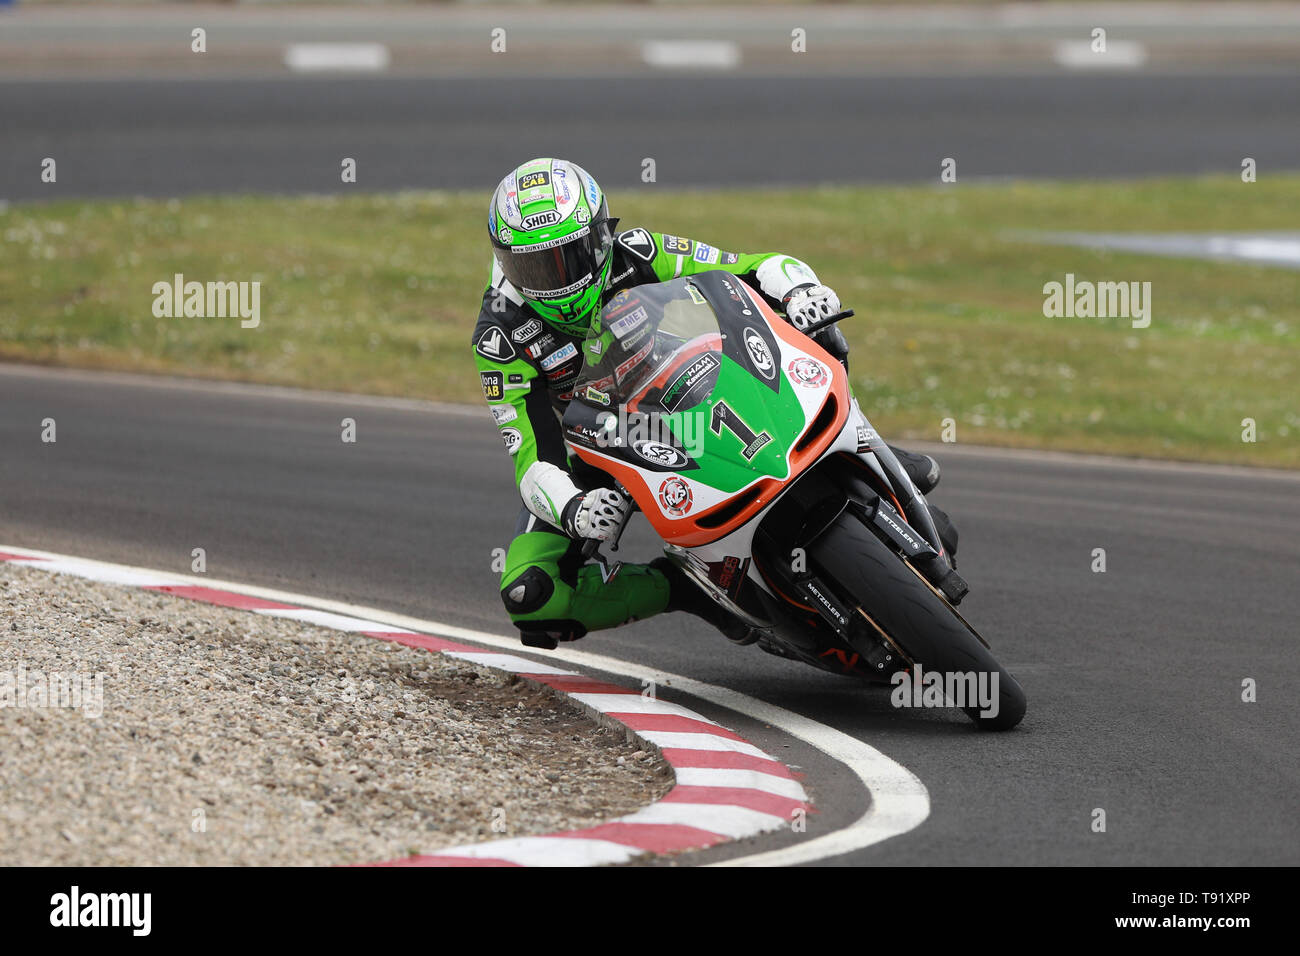 Portrush, Northern Ireland. 16th May, 2019. International North West 200 Motorcycle road racing, Thursday practice and evening racing; Glenn Irwin on the KTS Racing Kawasaki during the SuperTwins qualifying session Credit: Action Plus Sports/Alamy Live News - Stock Image